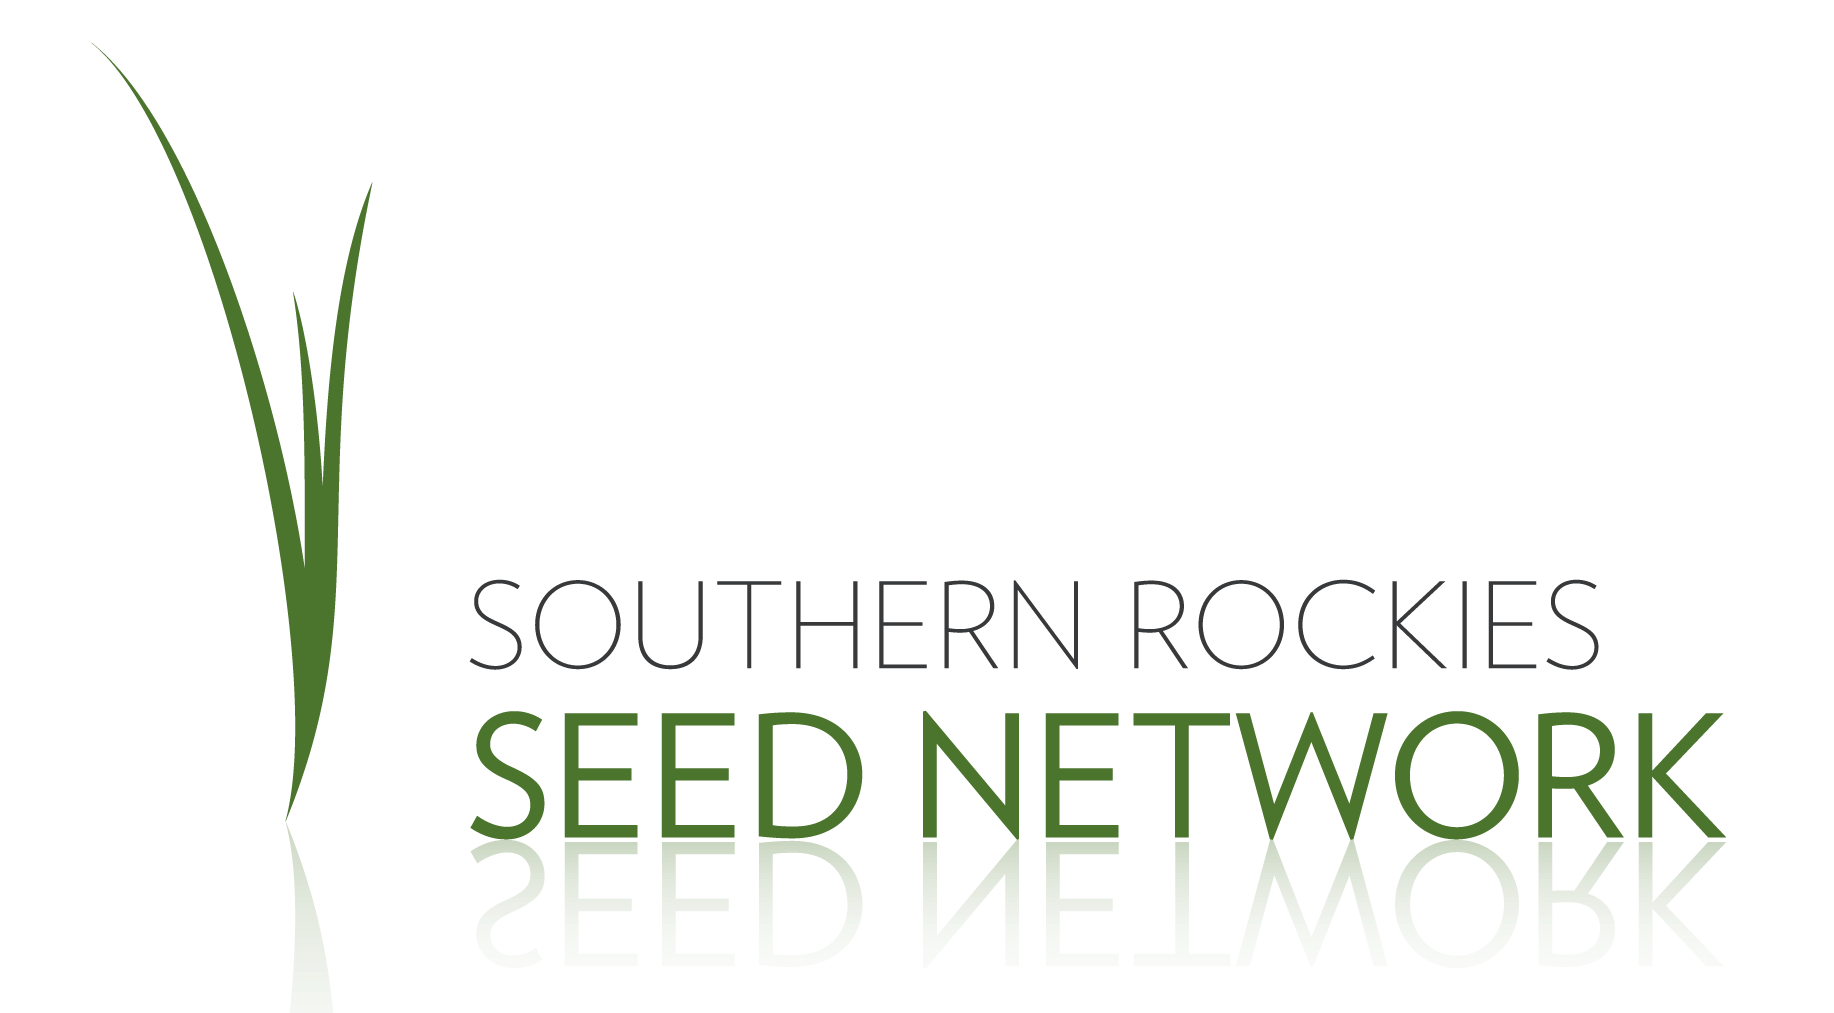 Southern Rockies Seed Network